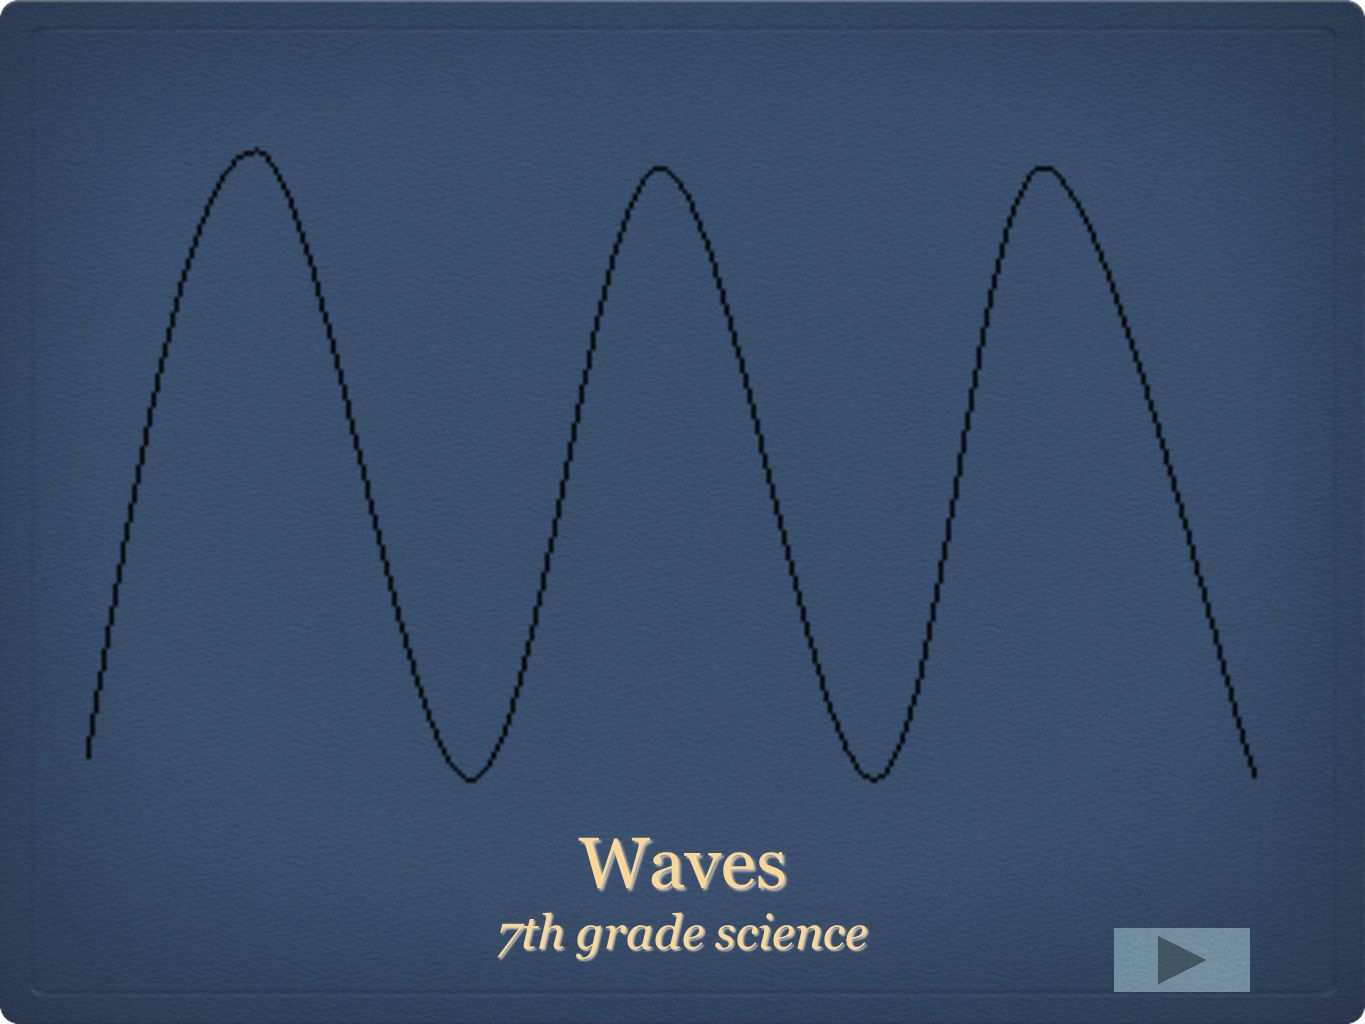 Waves 7th grade science  - ppt download